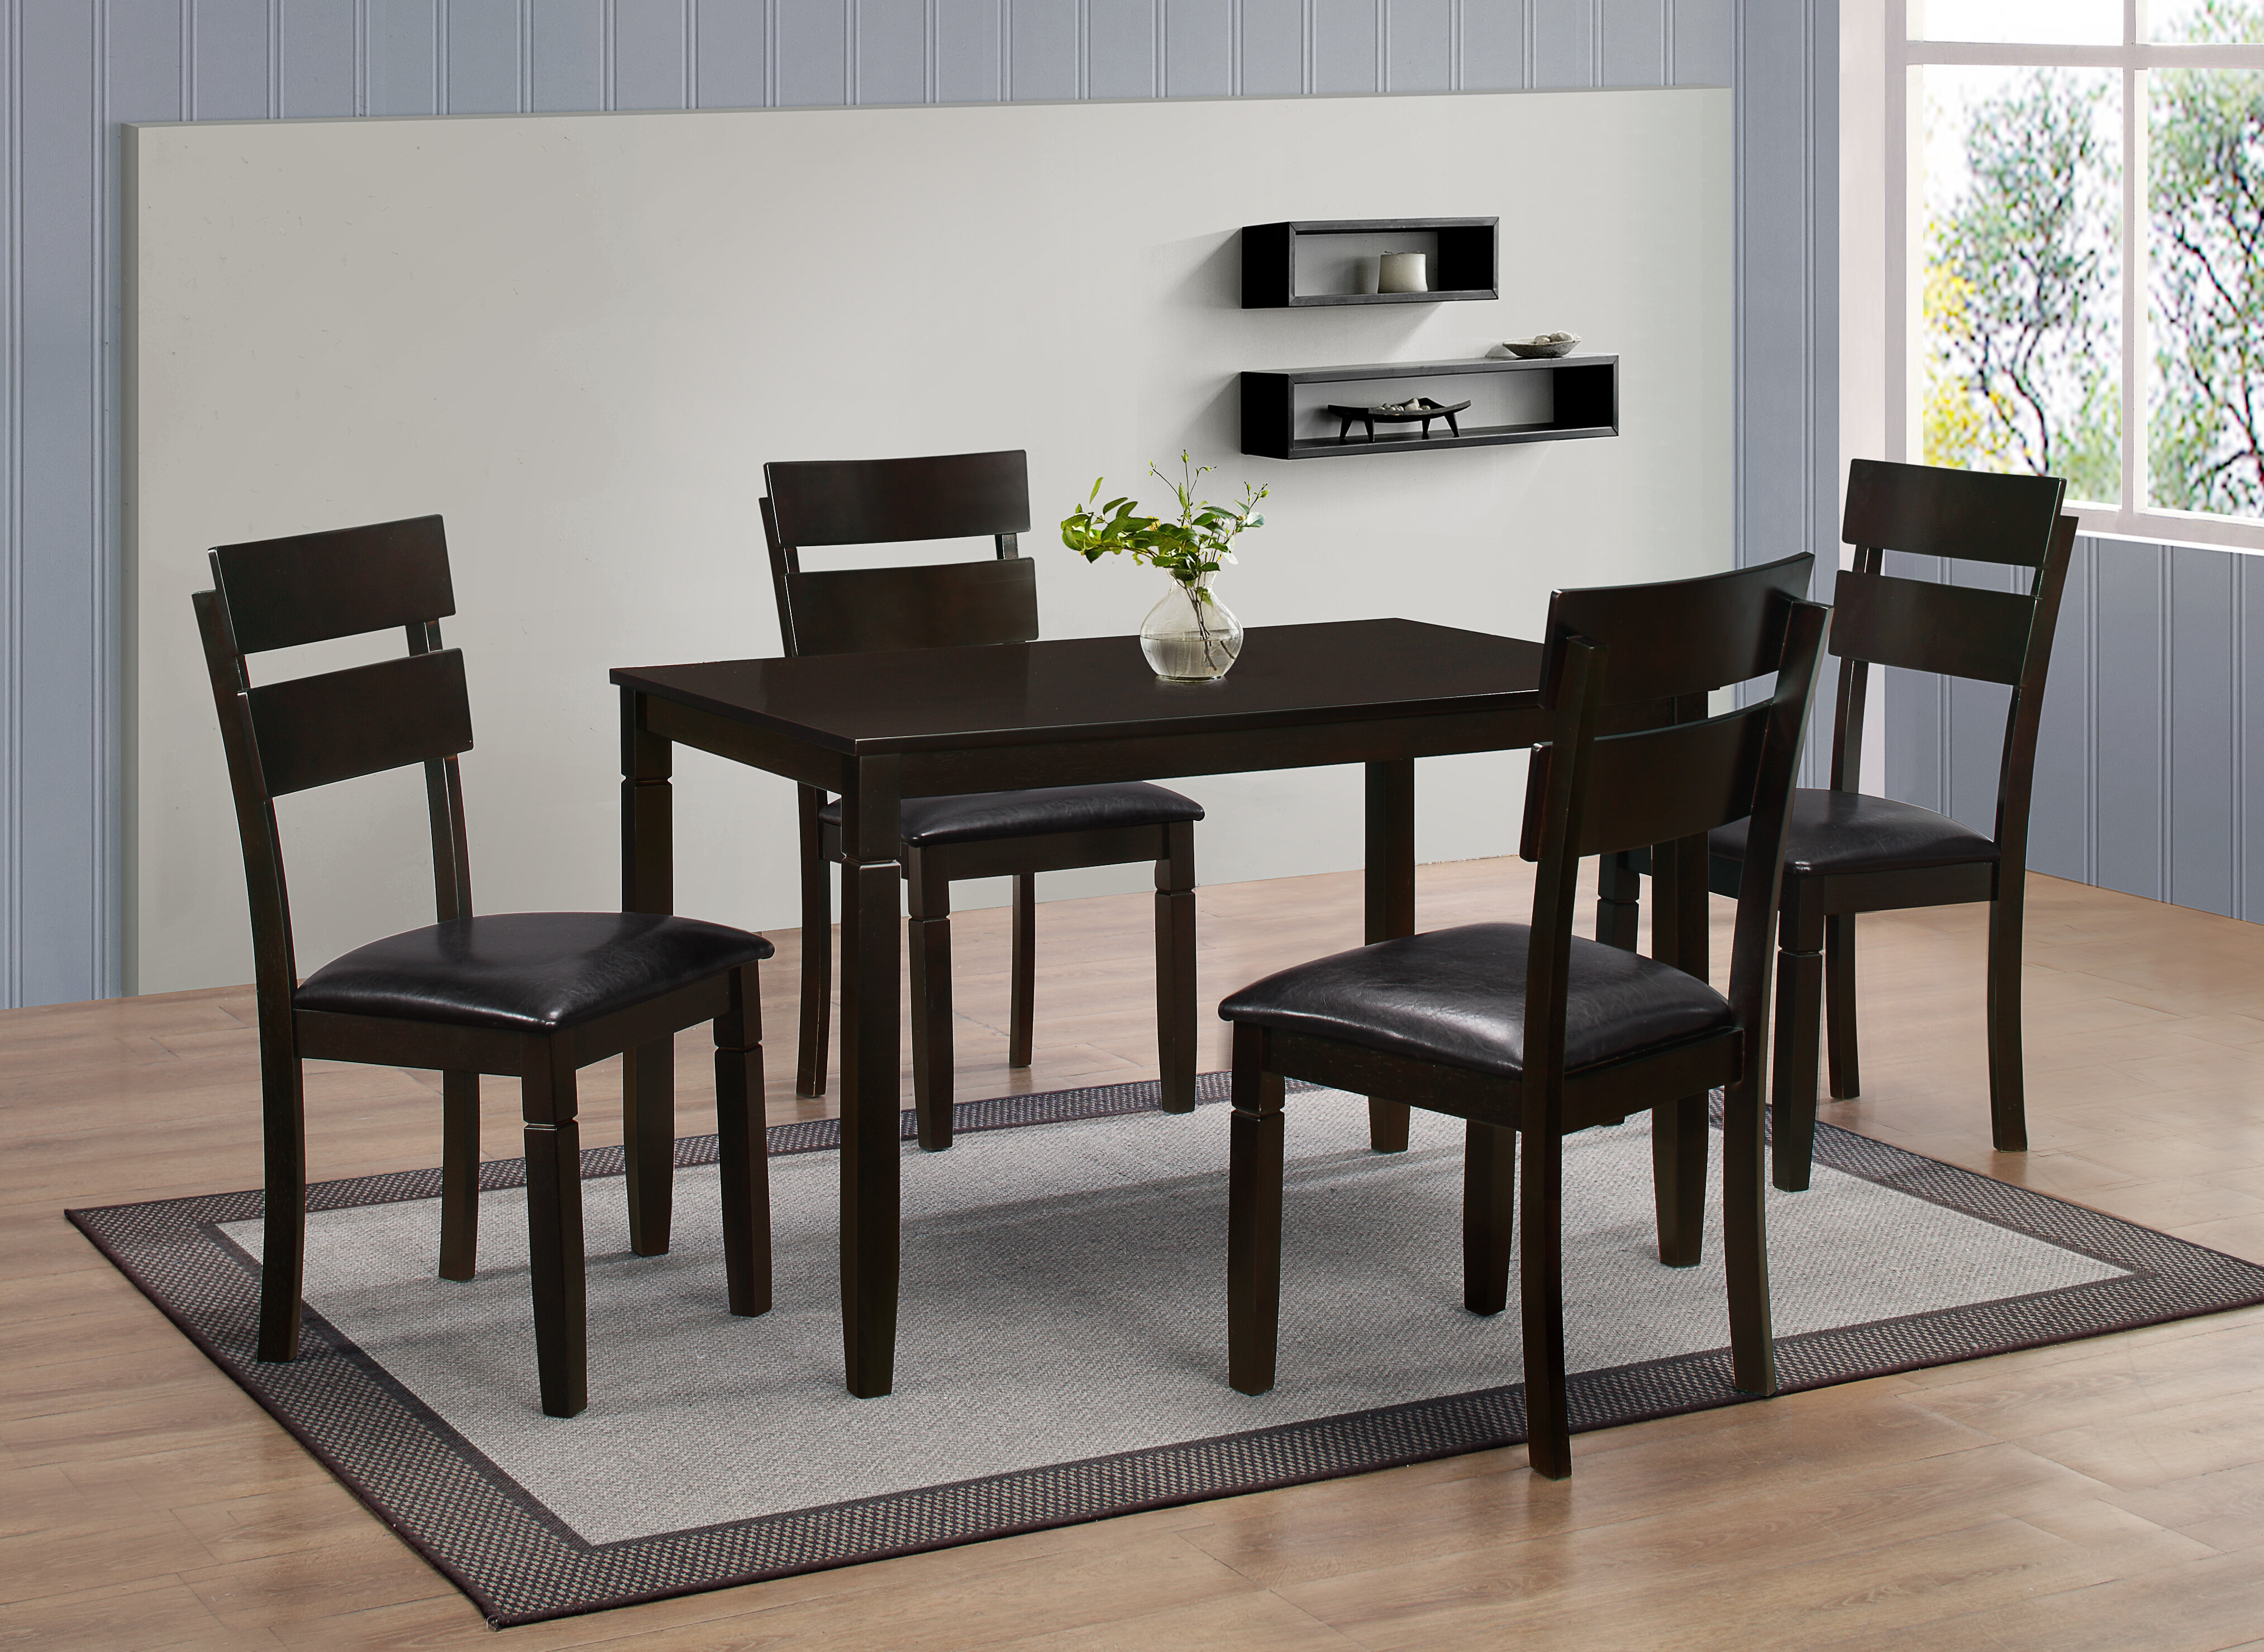 Red Barrel Studio Winnetka 5 Piece Dining Set Wayfair